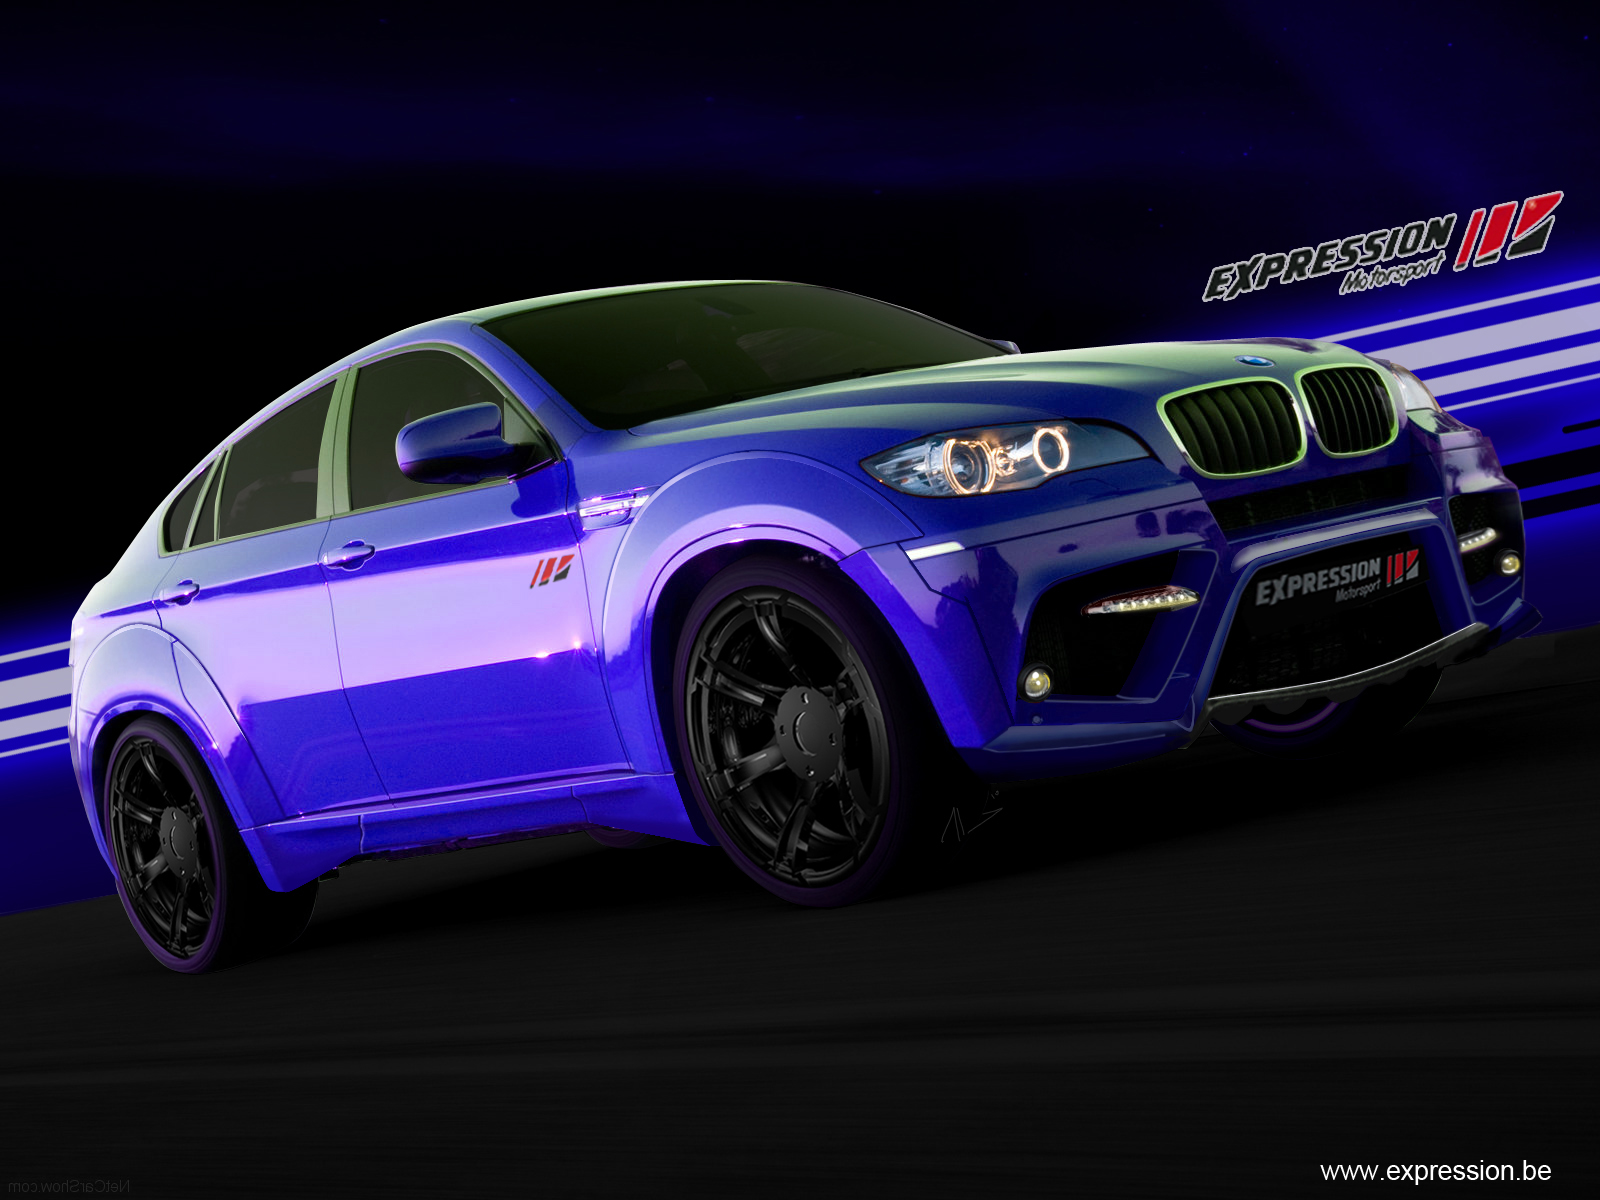 Photos and details about the BMW X6 M tuned by Expression Motorsport